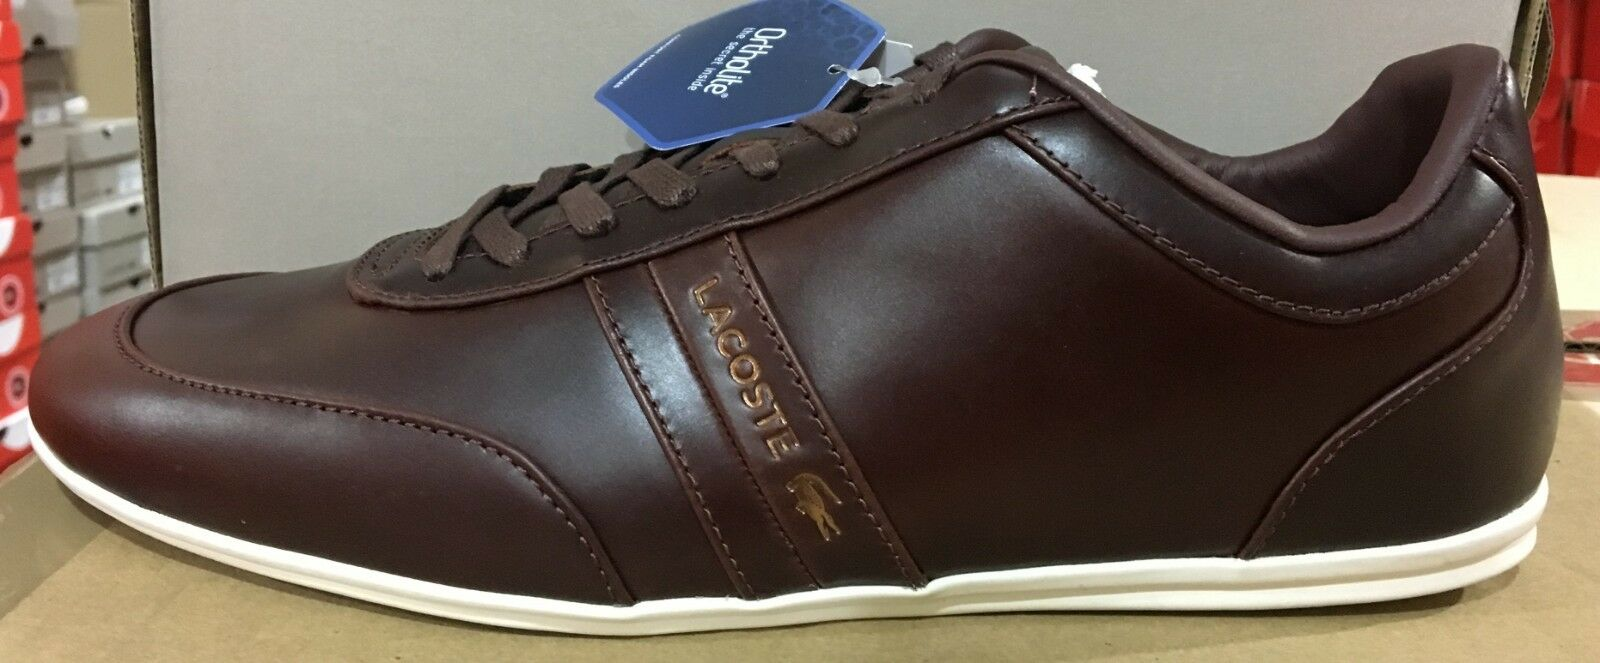 Lacoste Storda 318 2 US CAM Men's Brown Leather Casual Sneakers 7-36CAM00611W7 L